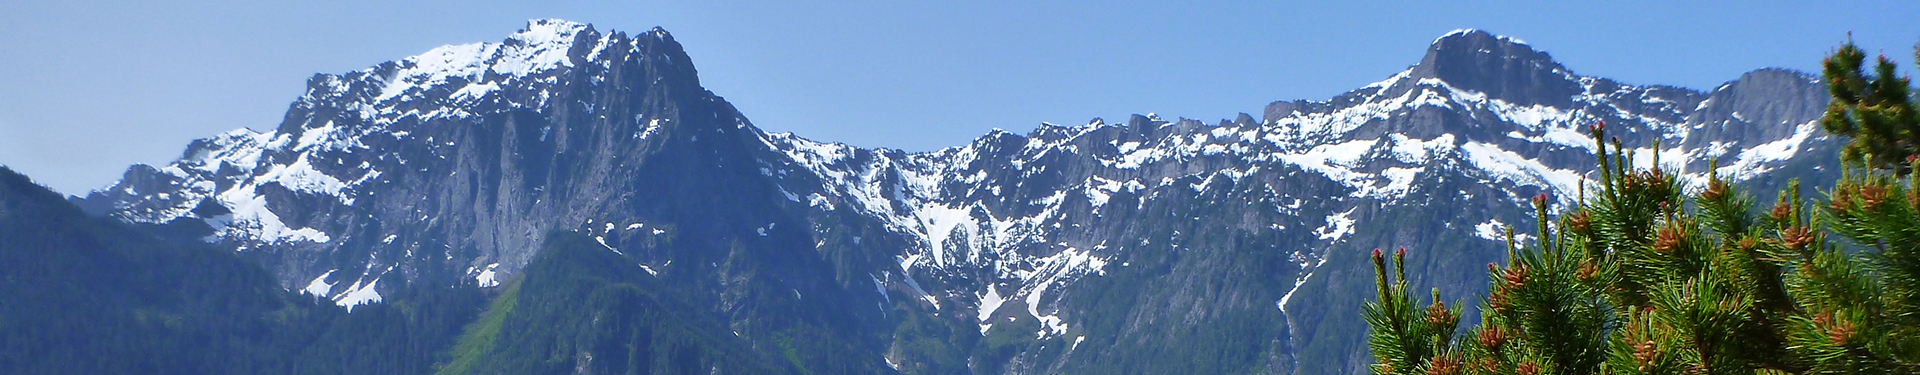 Tulalip Natural Resources Department image of alpine scene in the Cascade Mountains